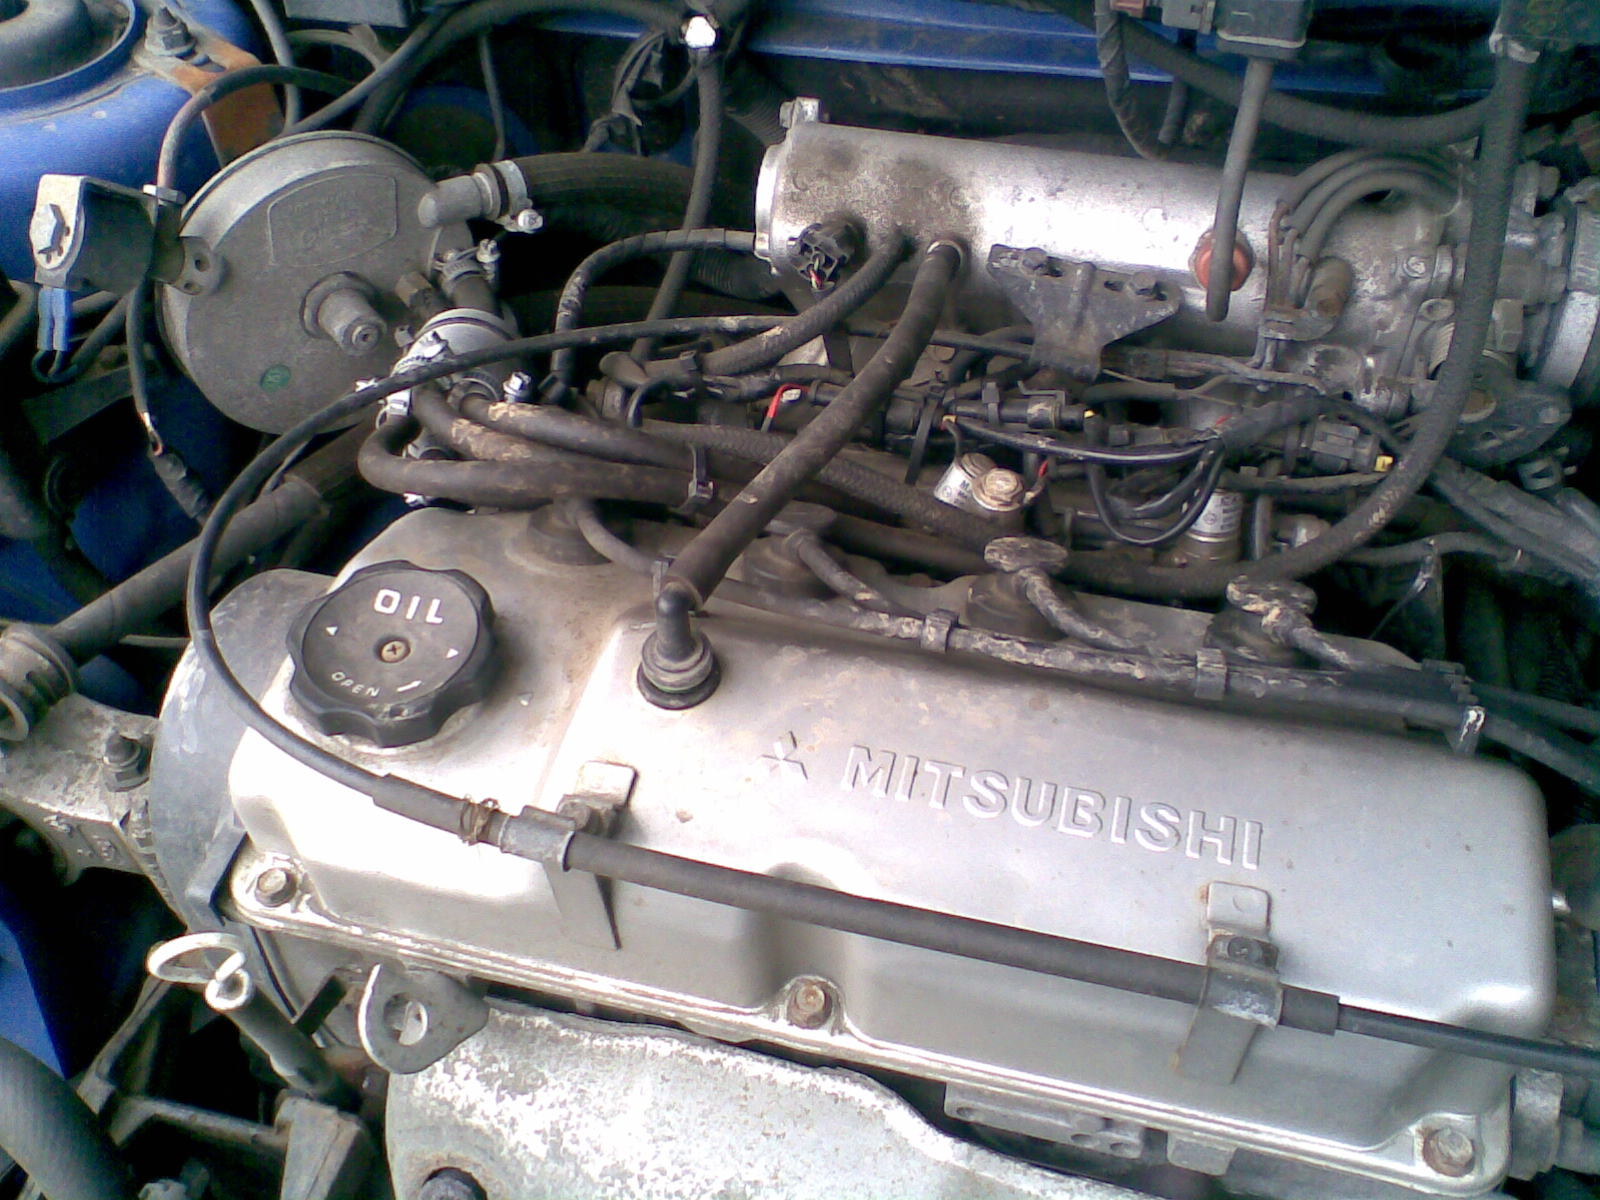 MITSUBISHI SPACE RUNNER engine